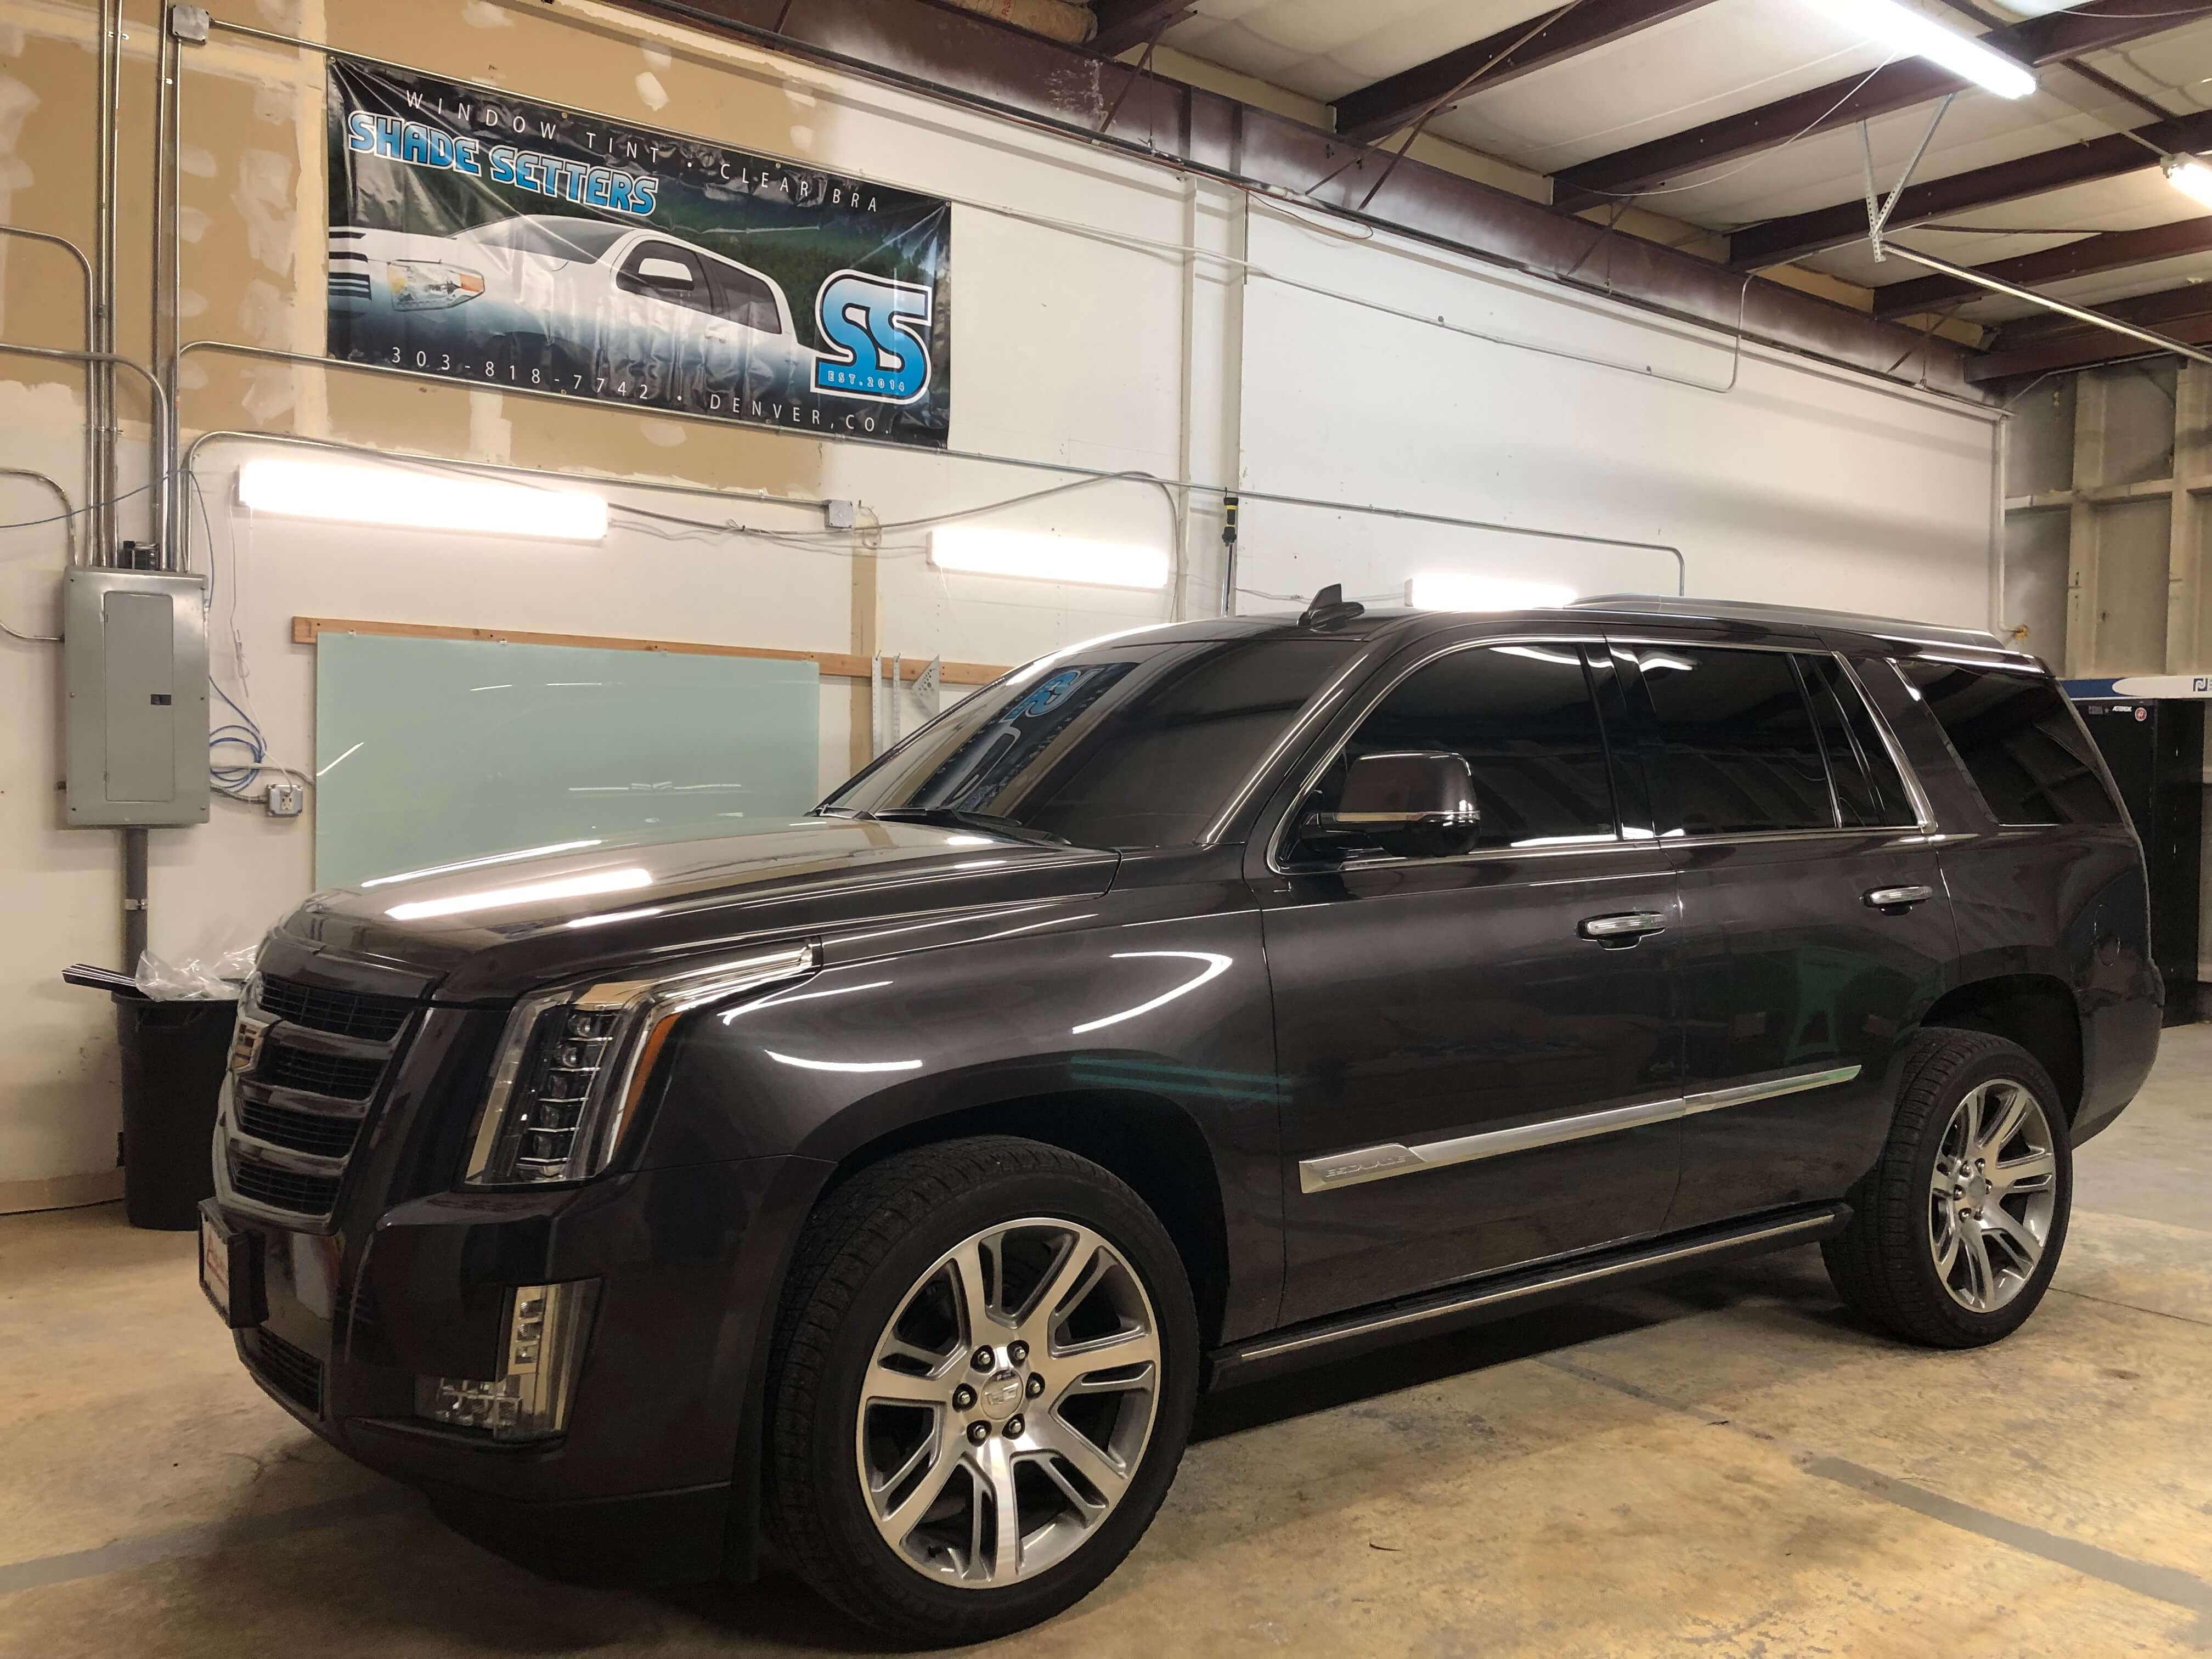 Image of a vehicle we tinted recently